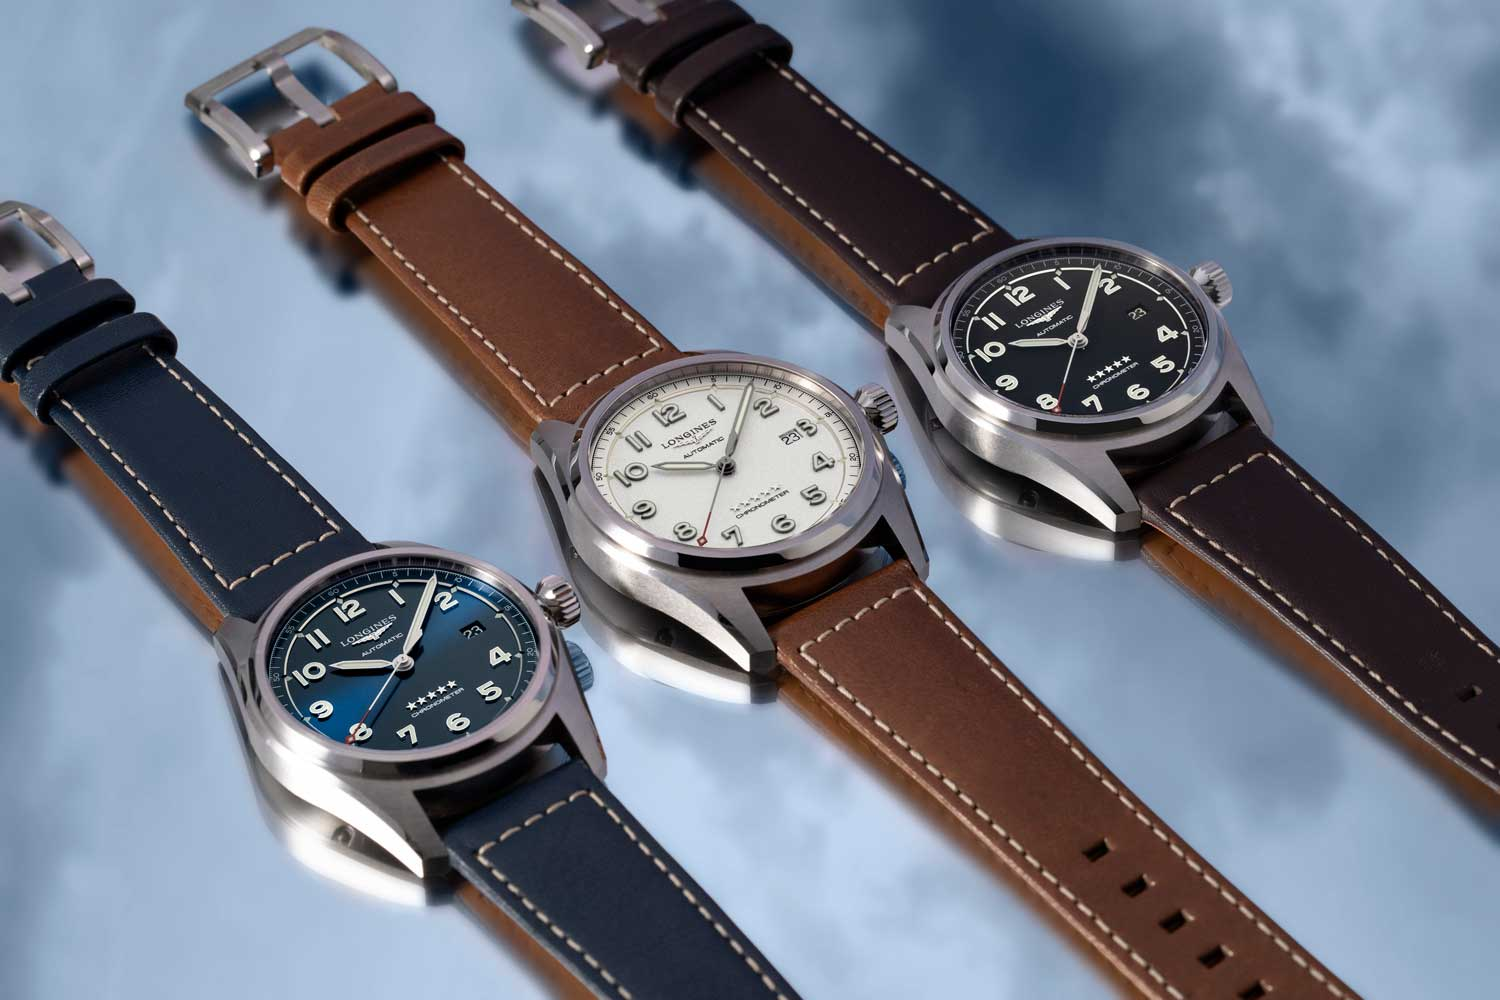 The sunray blue dial, silver grained dial and matt black dial versions of the time only additions to the Spirit collection, which come in a 42 and 40mm satin and polished steel case variation are both seen here fitted on matched leather straps (©Revolution)